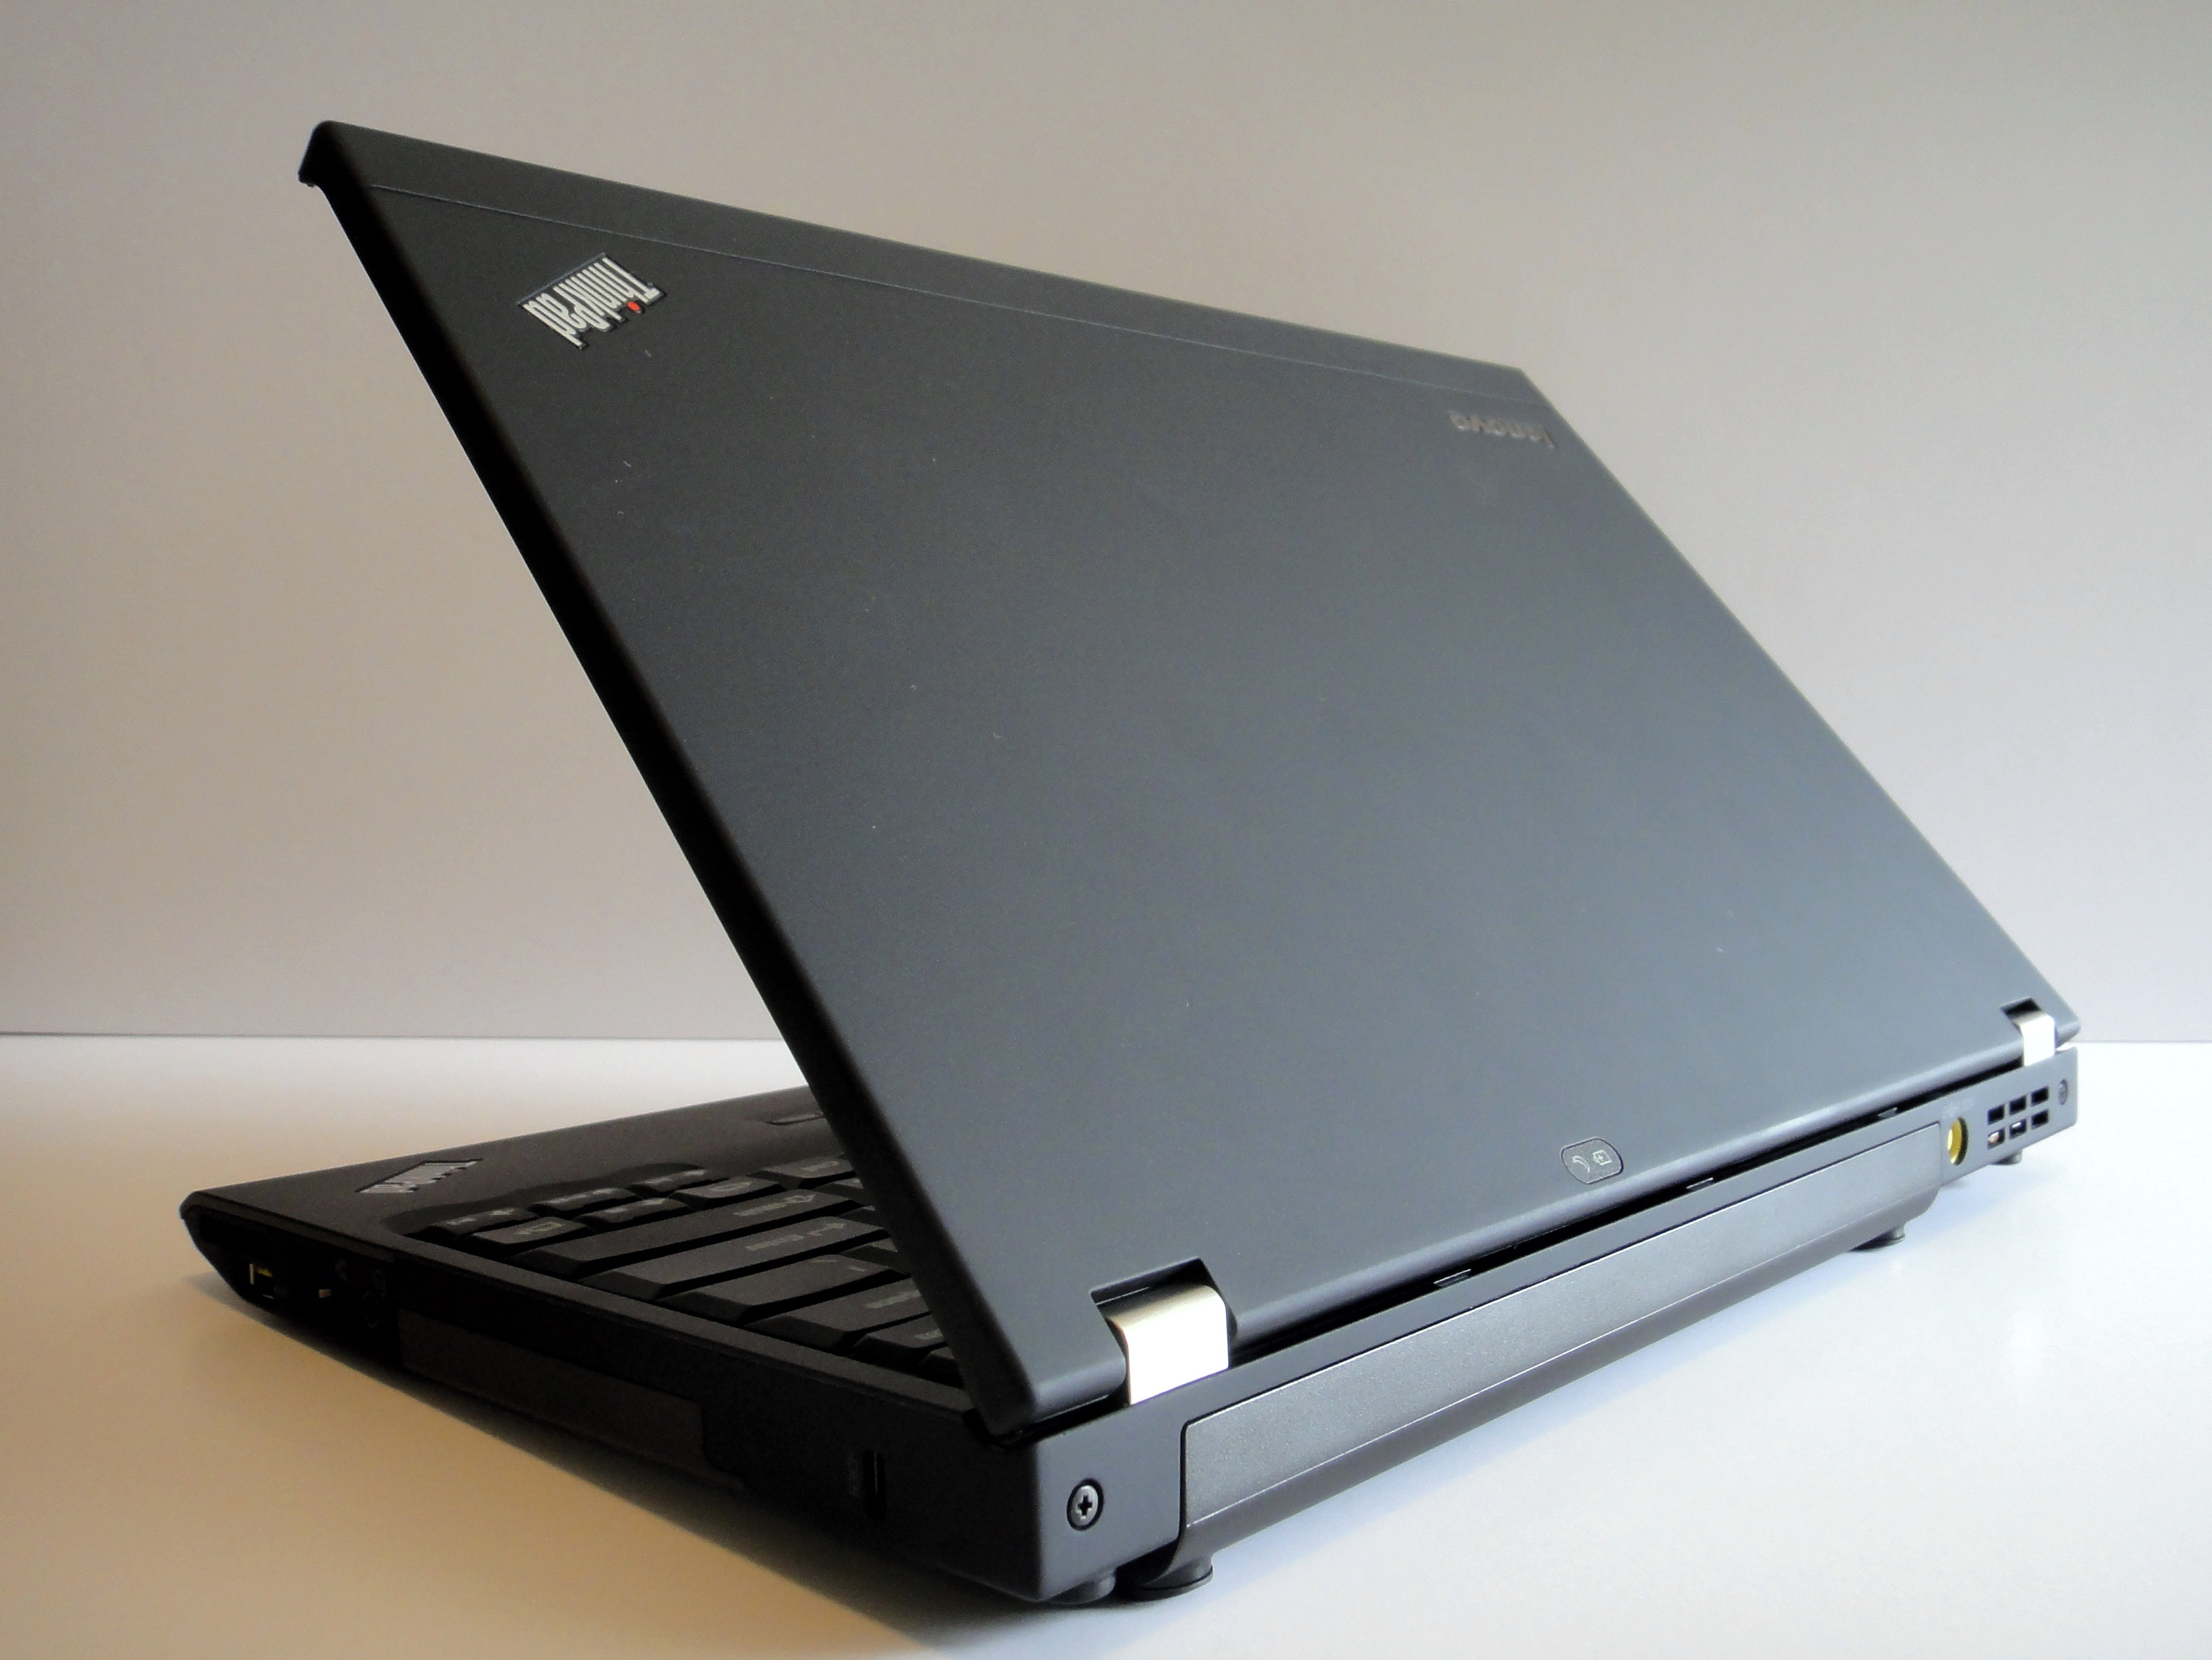 Lenovo ThinkPad X220 Hands On, Details, Specs And Video